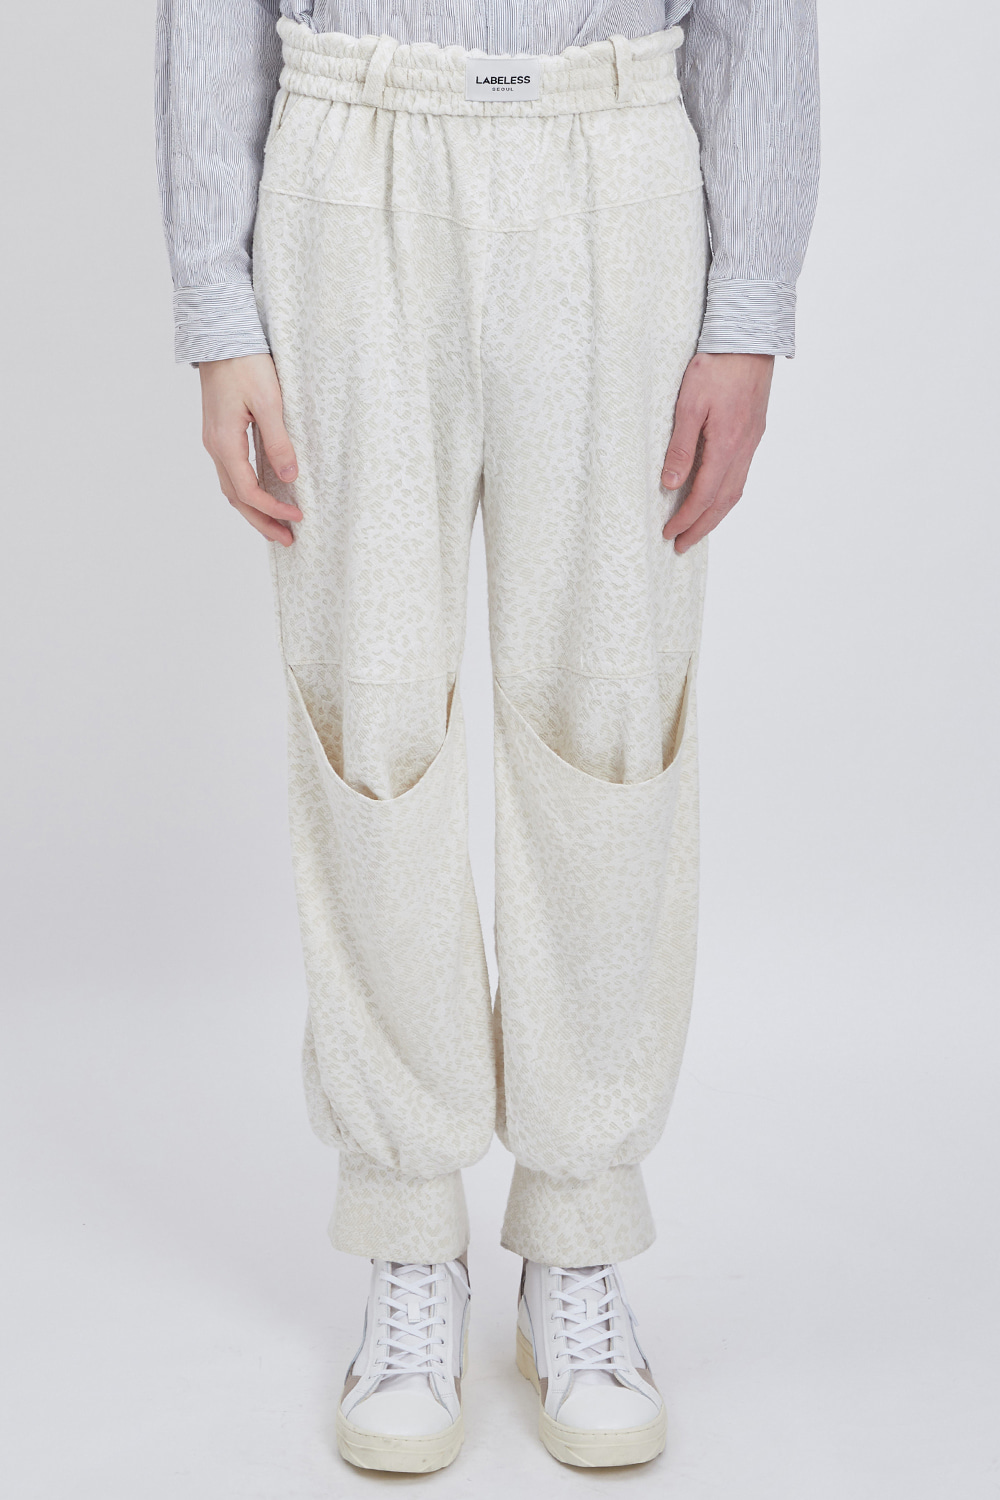 KNEE DARG SWEAT PANTS (JACQUARD)